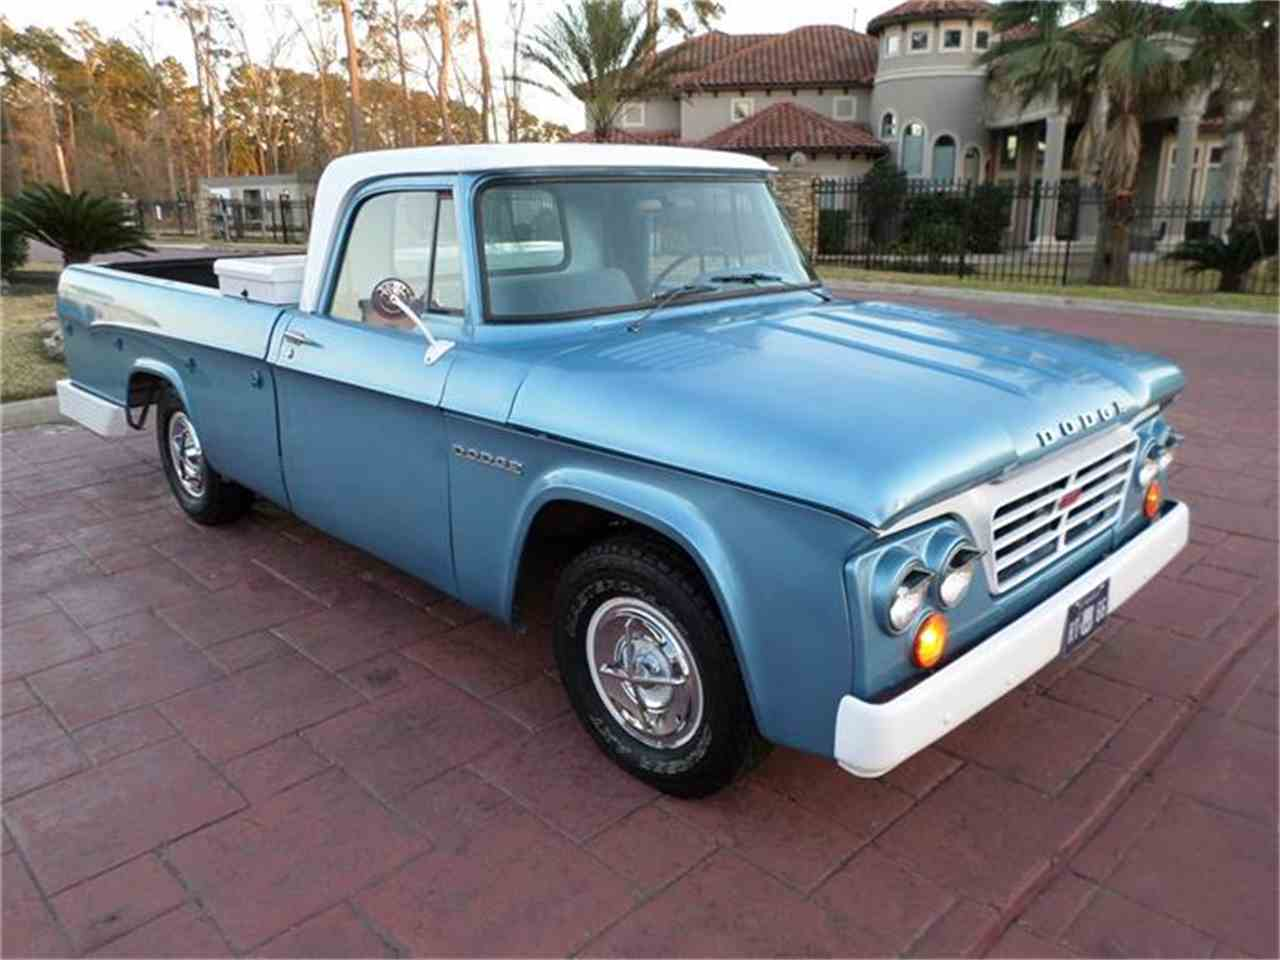 1980 1990 Chevy Smallblock V8 Powersteering Pump Bracket Kit together with Chrysler Diagrams further Headlights besides 383 Plymouth Engine Diagram furthermore 1964 Dodge D100 For Sale In Conroe Texas 77304. on 1967 dodge wiring diagram